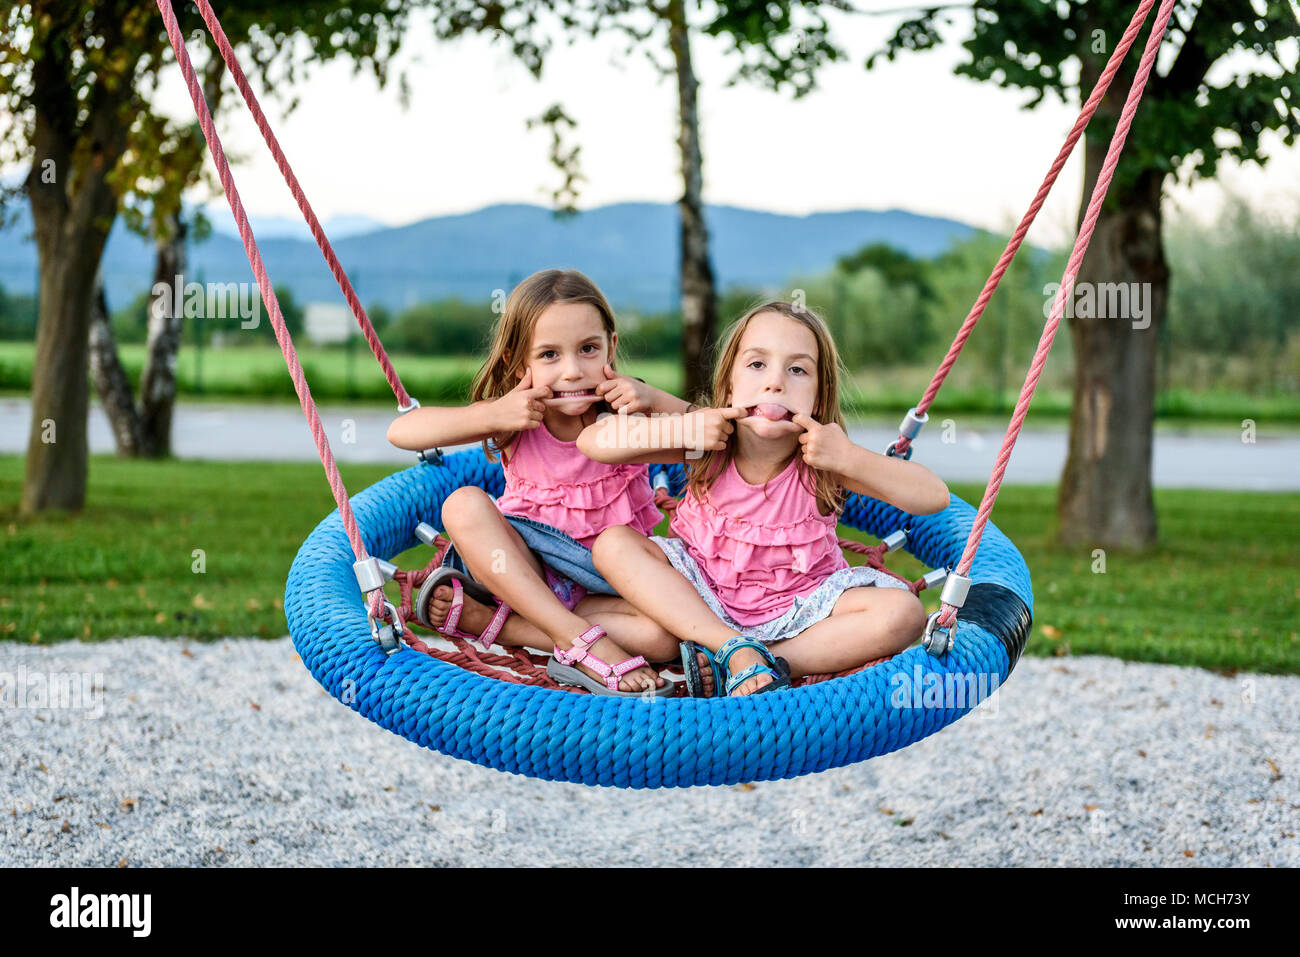 Identical twin girls on spider web nest swing on playground. Active Children playing with Giant Swing-N-Slide Monster Web Swing on outdoors playground Stock Photo